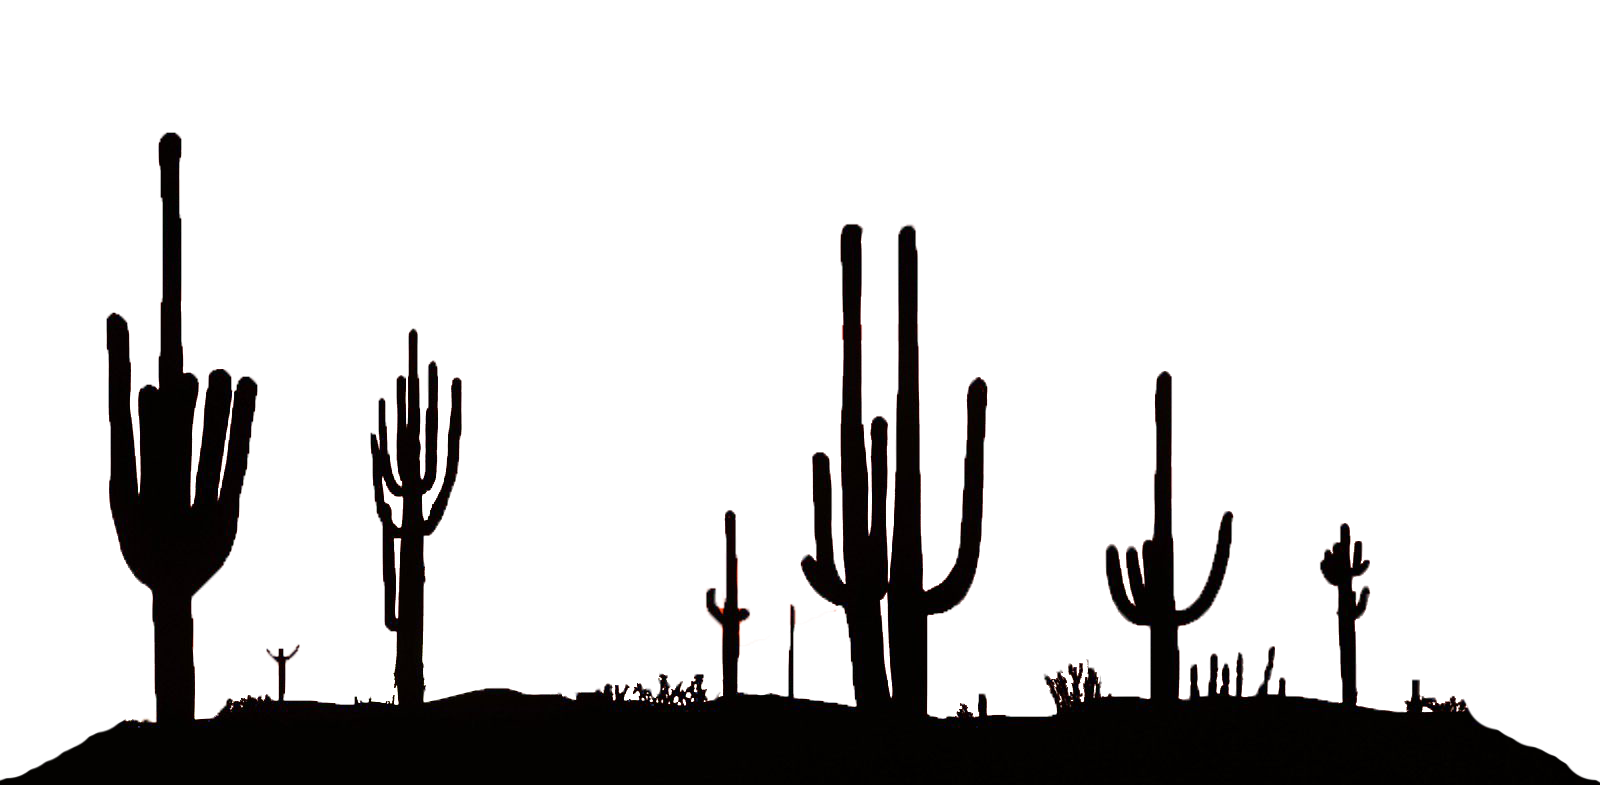 Desert silhouette png. Dylan james auto transport